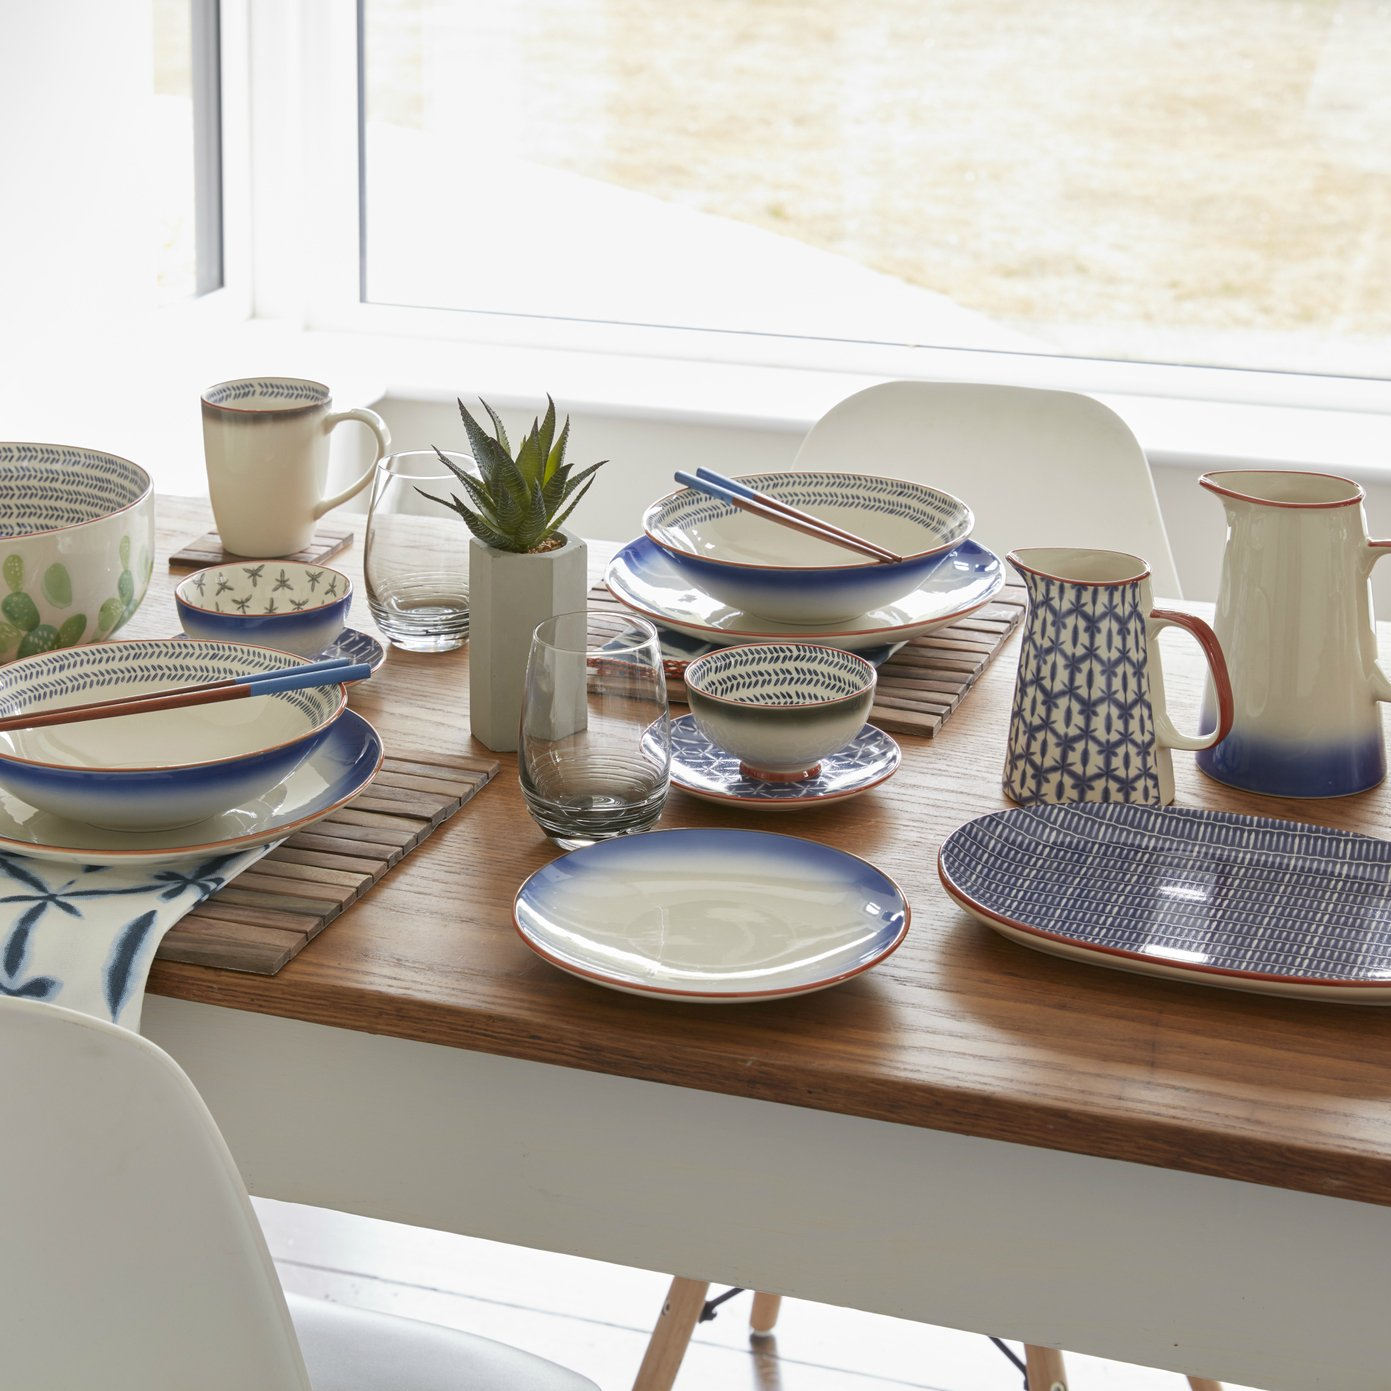 Set of 3 15 cm Creative Tops Drift Hand-Decorated Patterned Ceramic Side Plates Blue // White